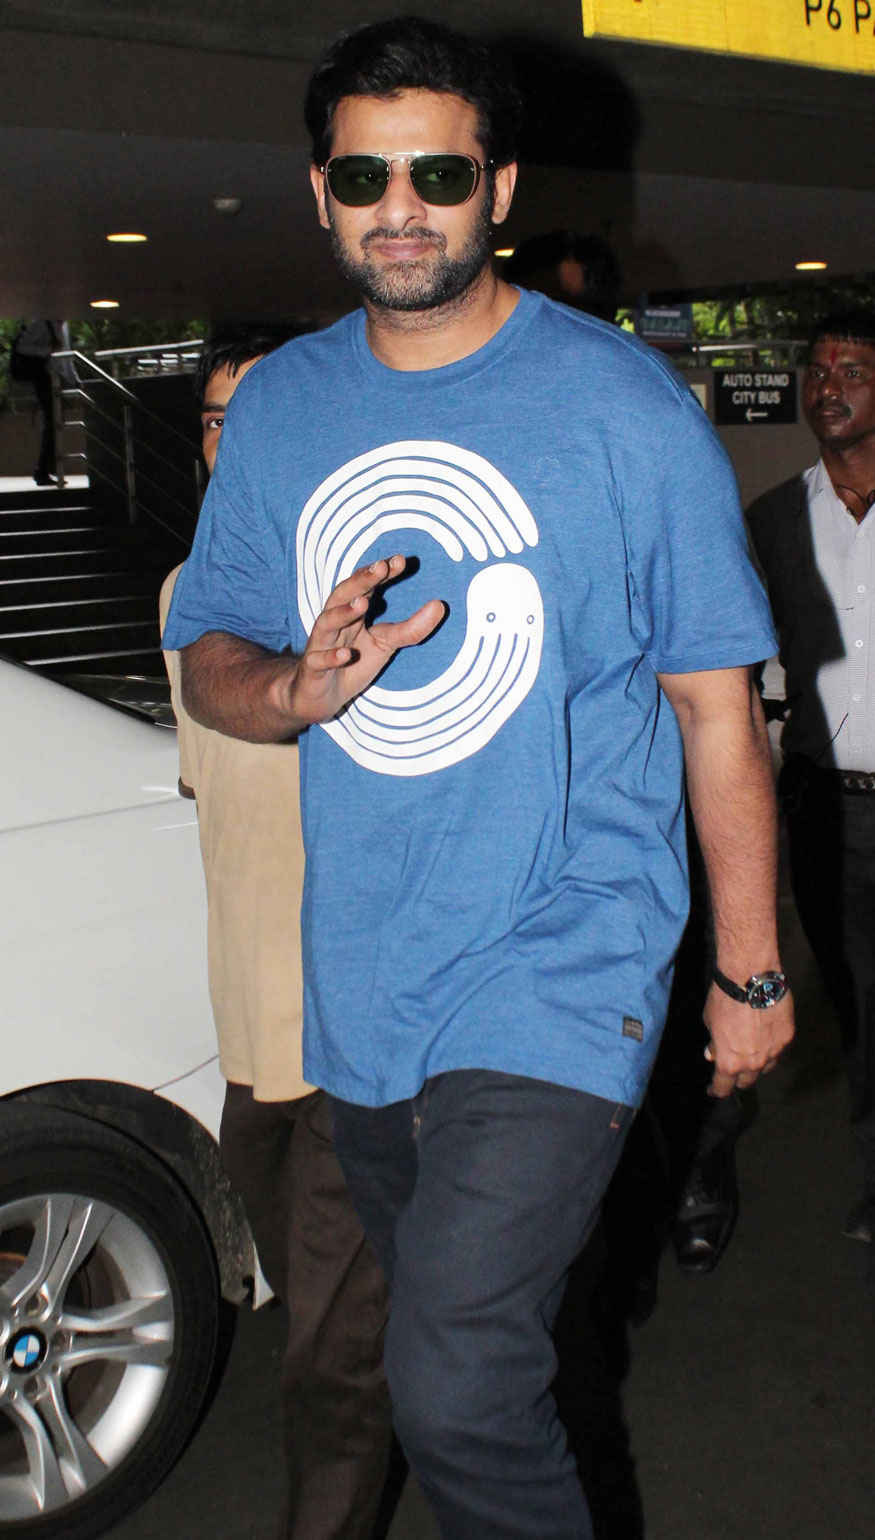 Bahubali Actor Prabhas at The Airport In Mumbai